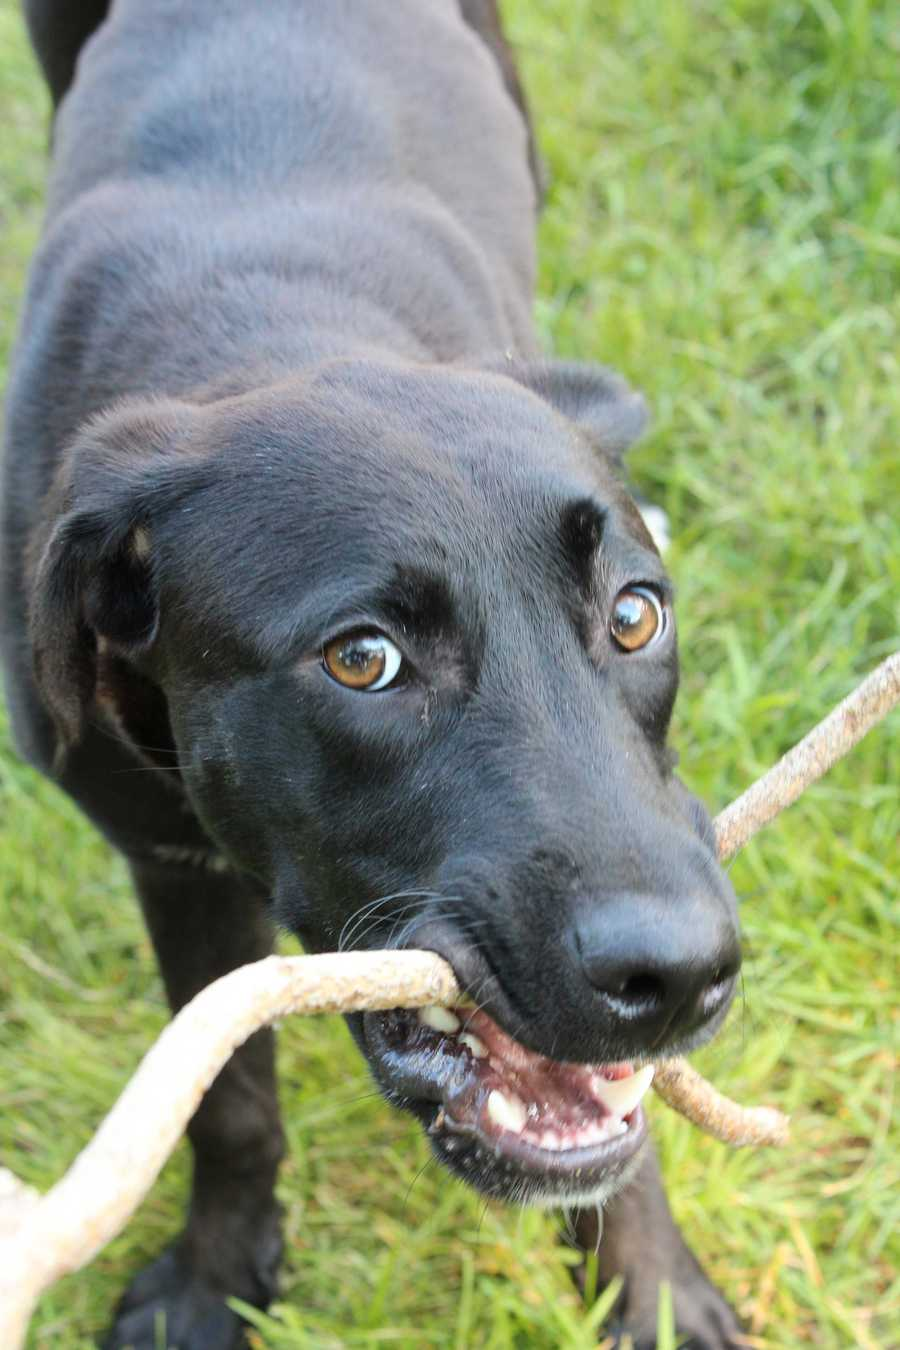 Knox is an 8 month old black lab-Great Dane mix. He's looking for an active family with canine siblings. MORE